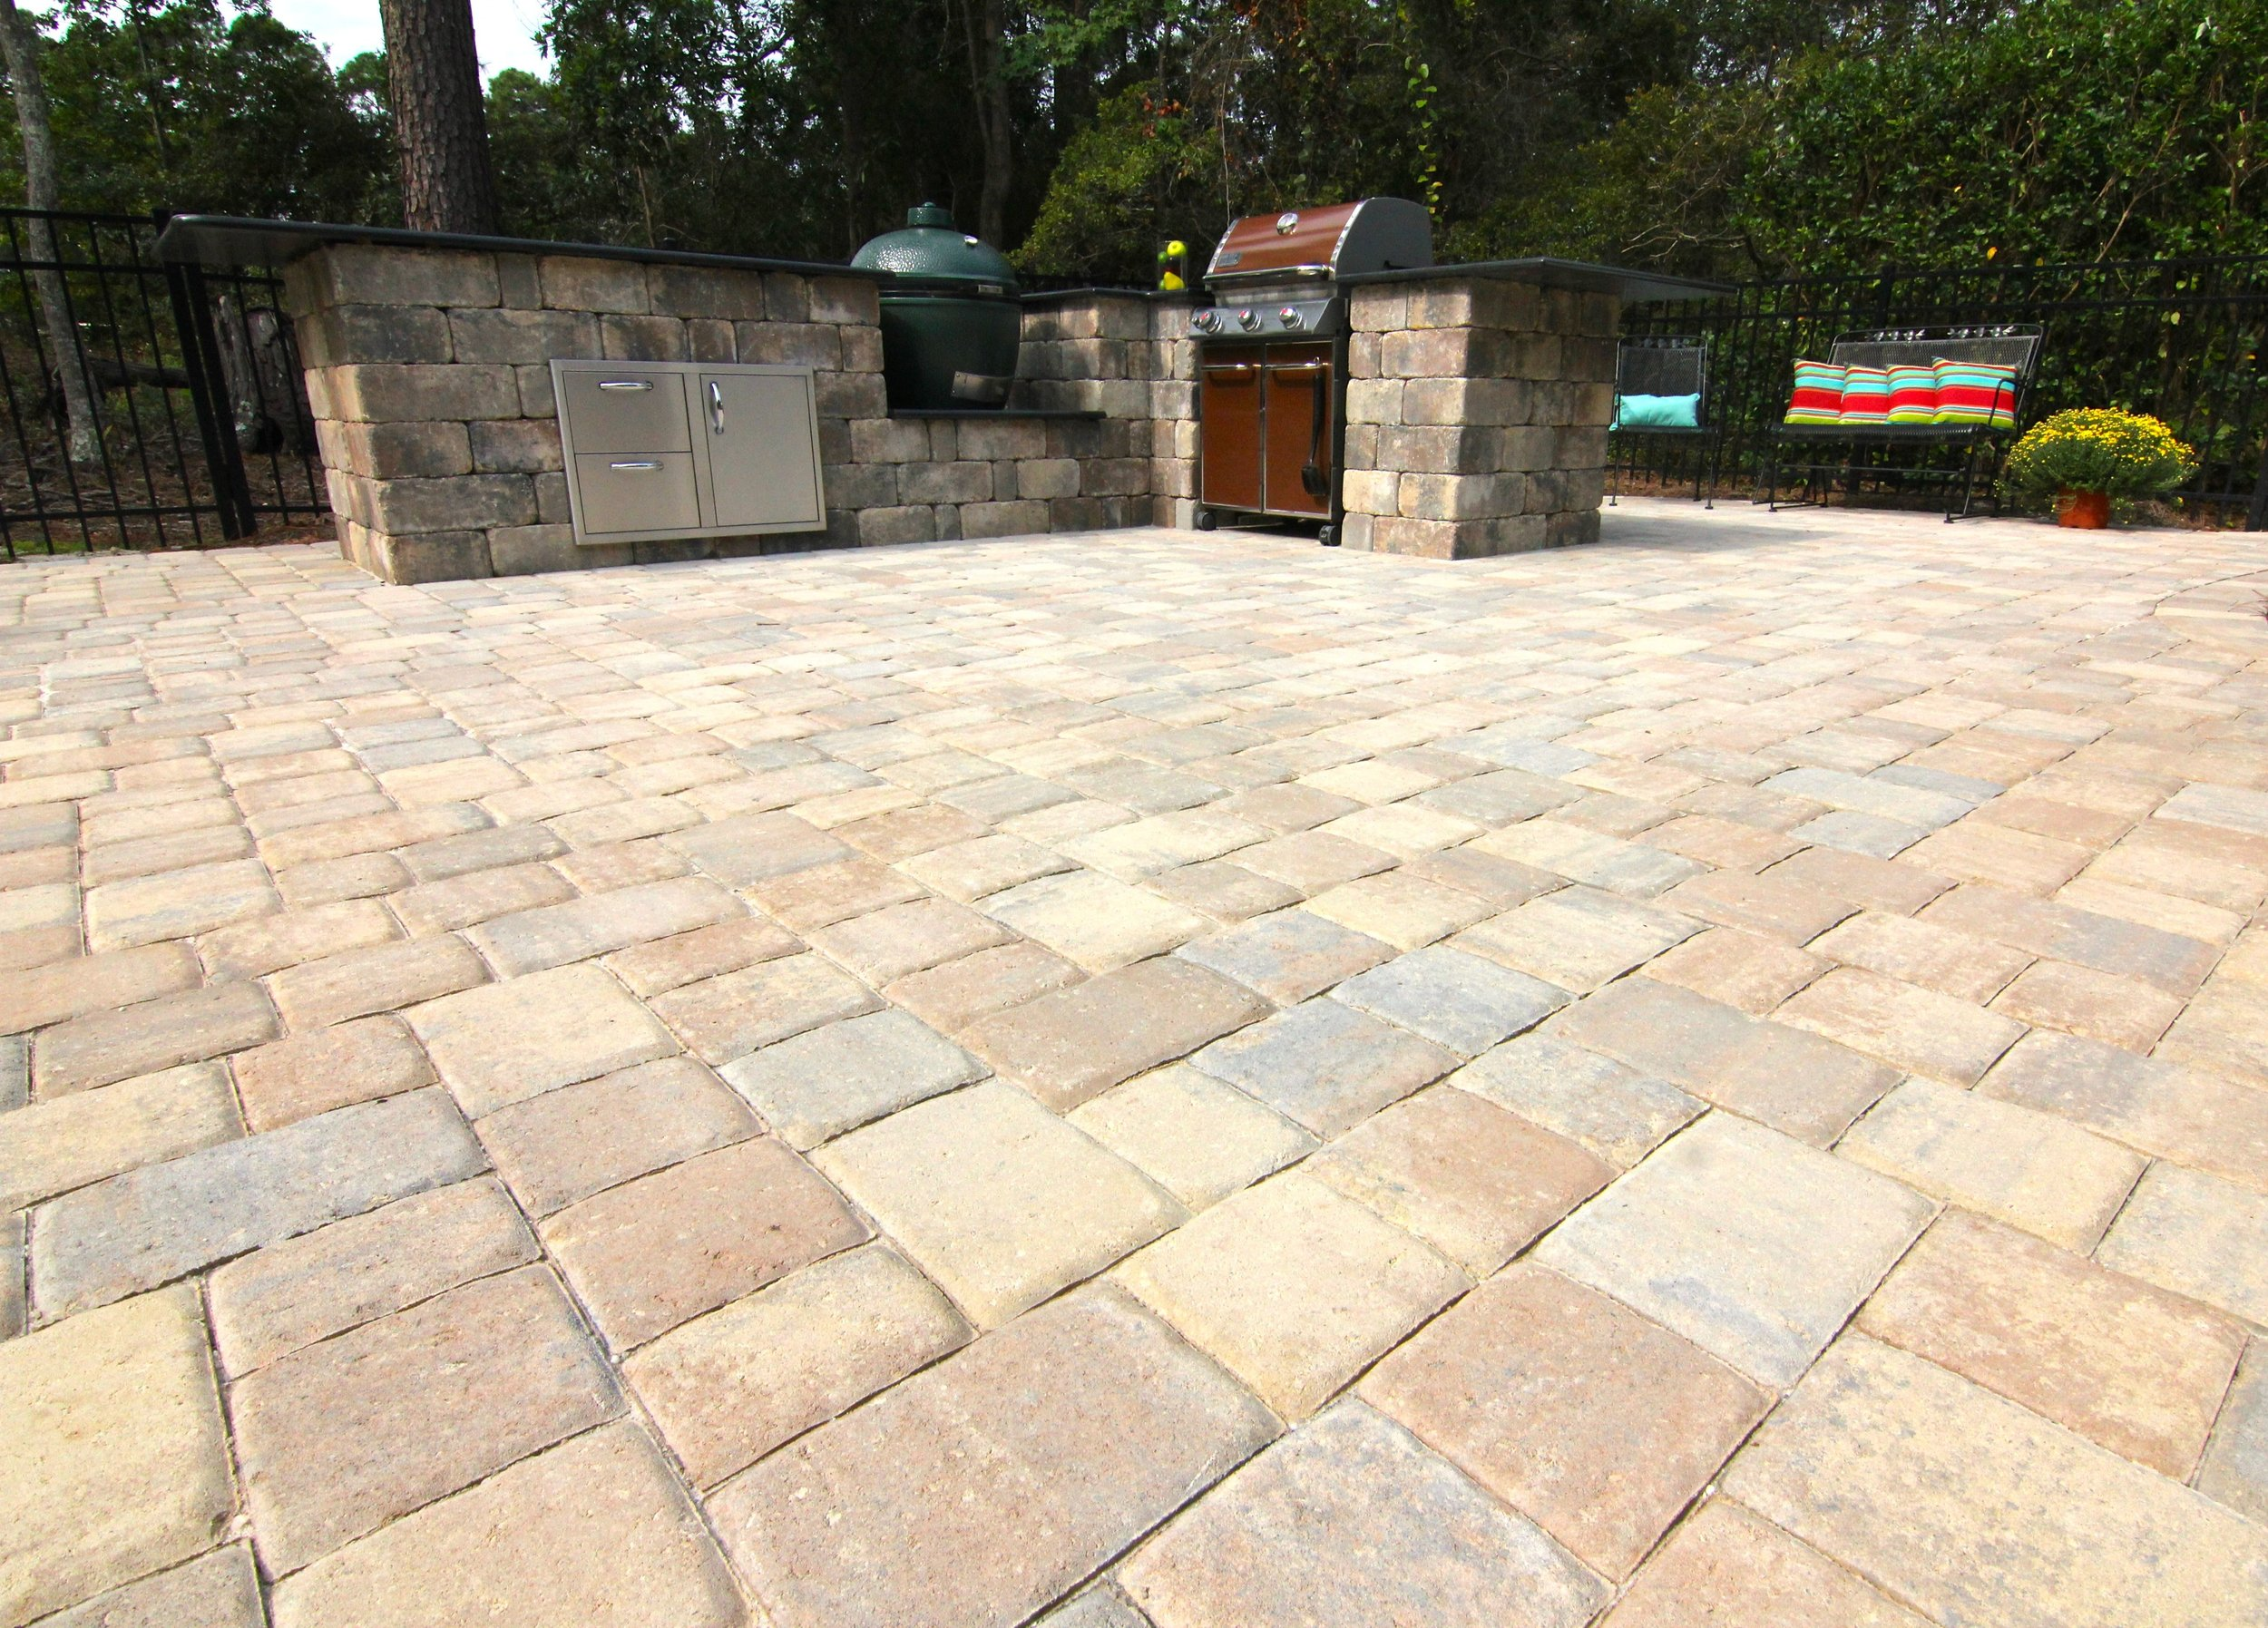 This Tremron,  Olde Towne Sierra  paver patio design is the ultimate in entertainment! With it's custom outdoor grilling station - get ready to entertain all year around!